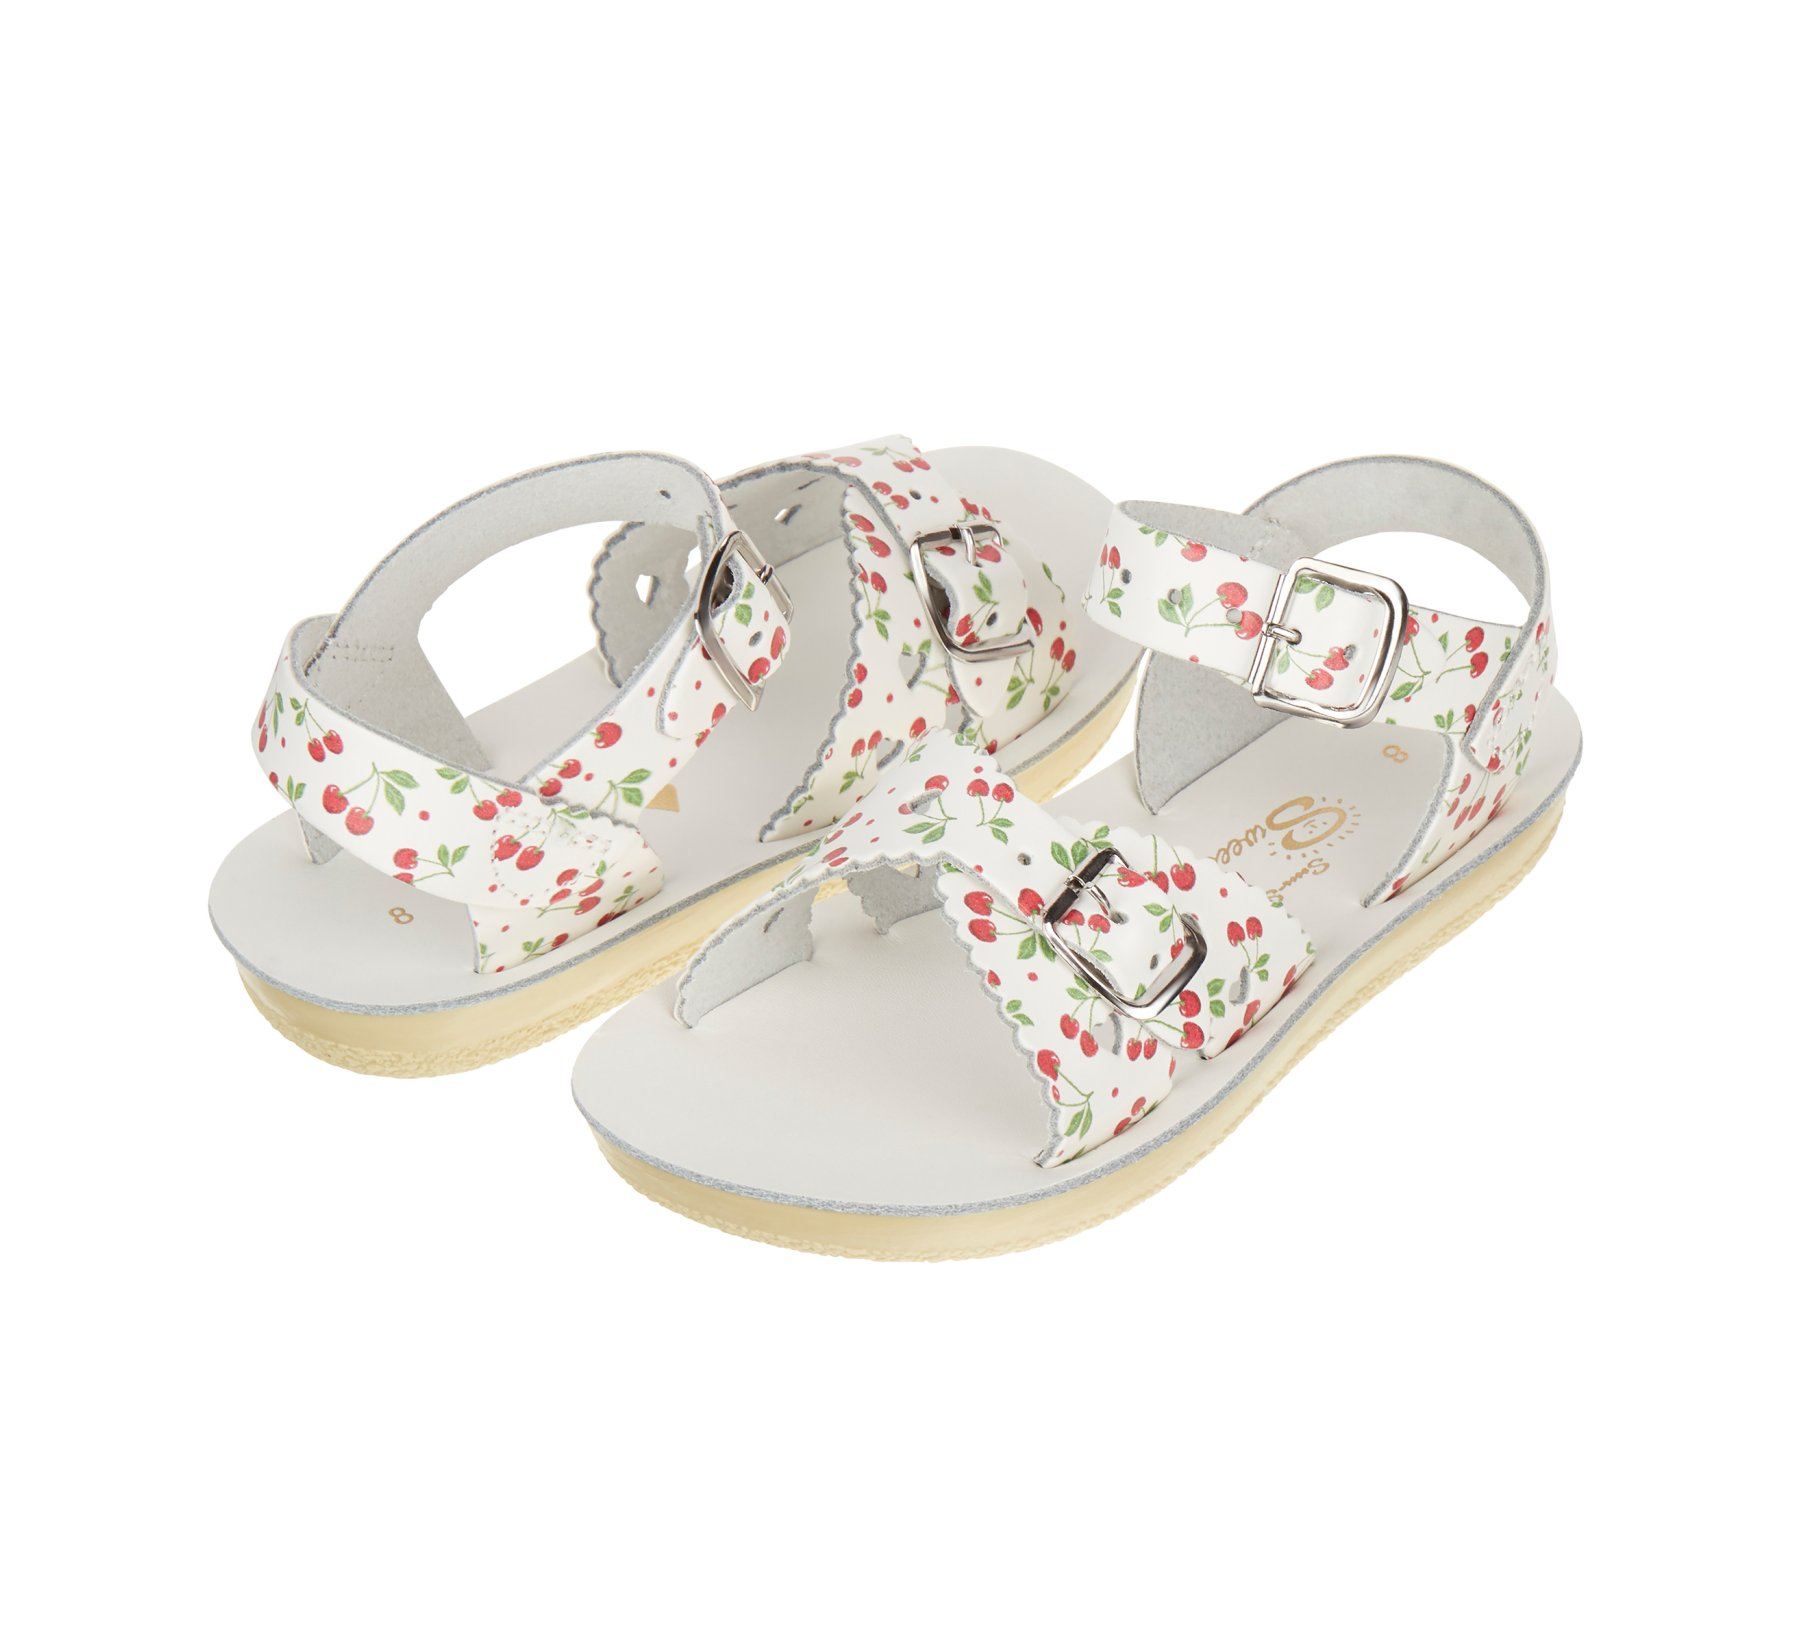 Sweetheart Cherry - Salt Water Sandals